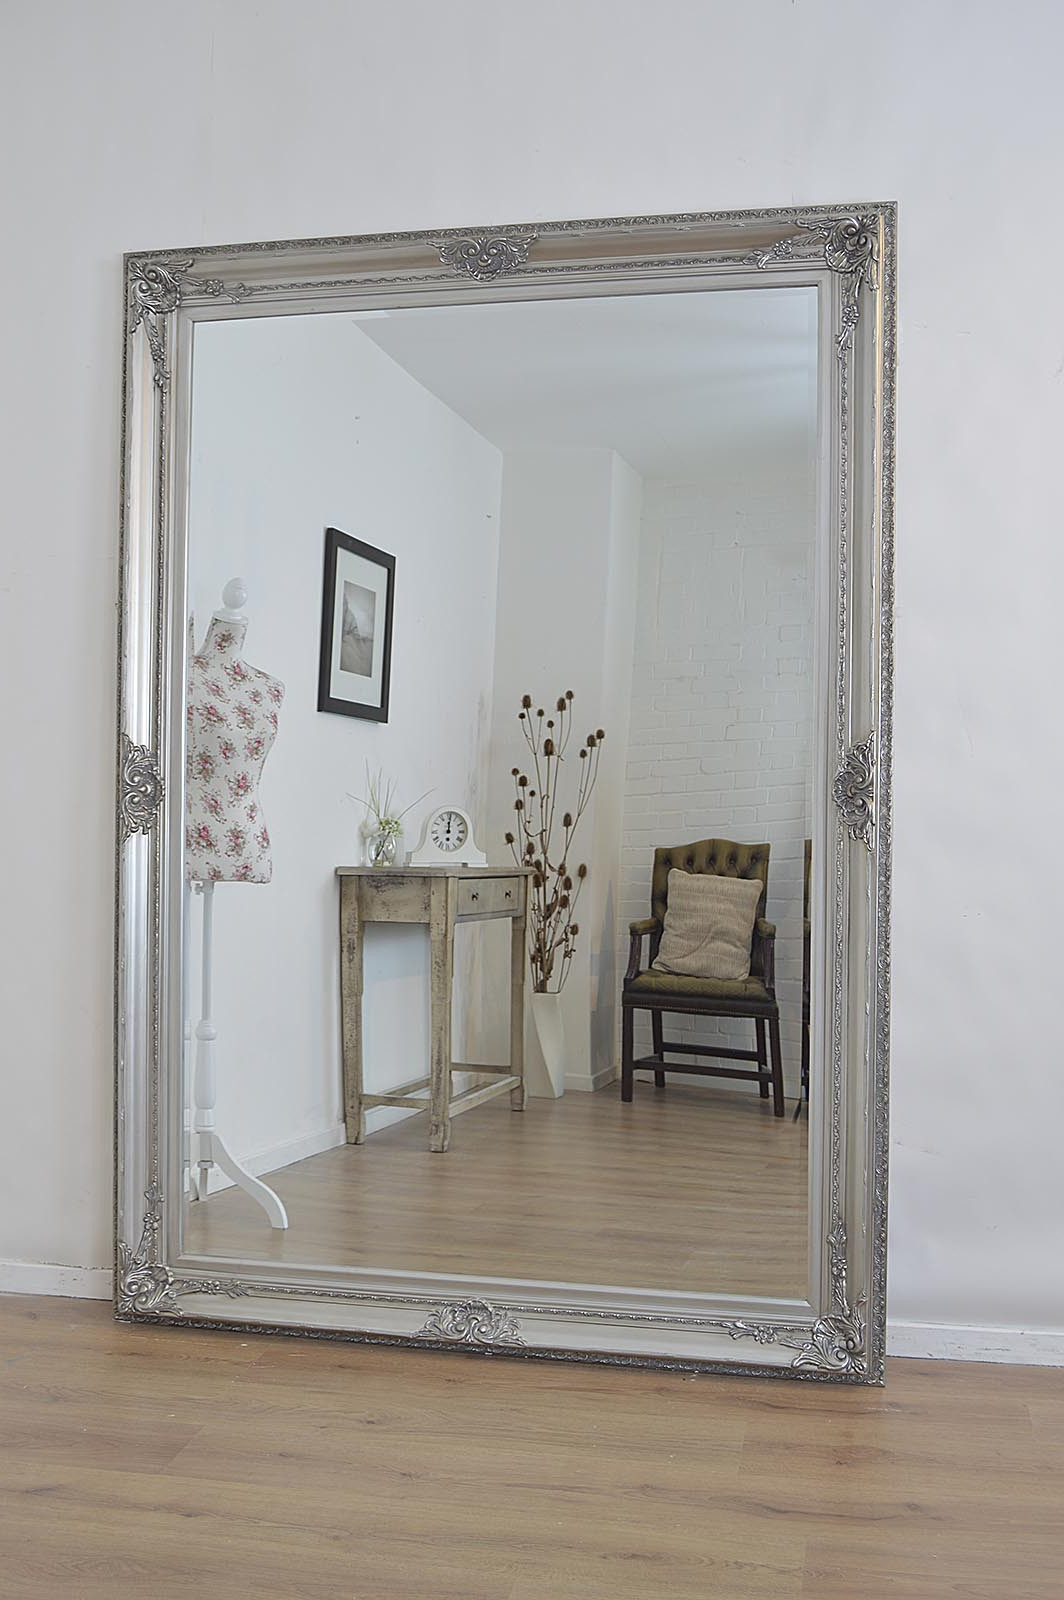 Decoration Large Mirror Bedrooms Decorate For Wall Big Exciting Throughout Well Known Big Decorative Wall Mirrors (View 6 of 20)